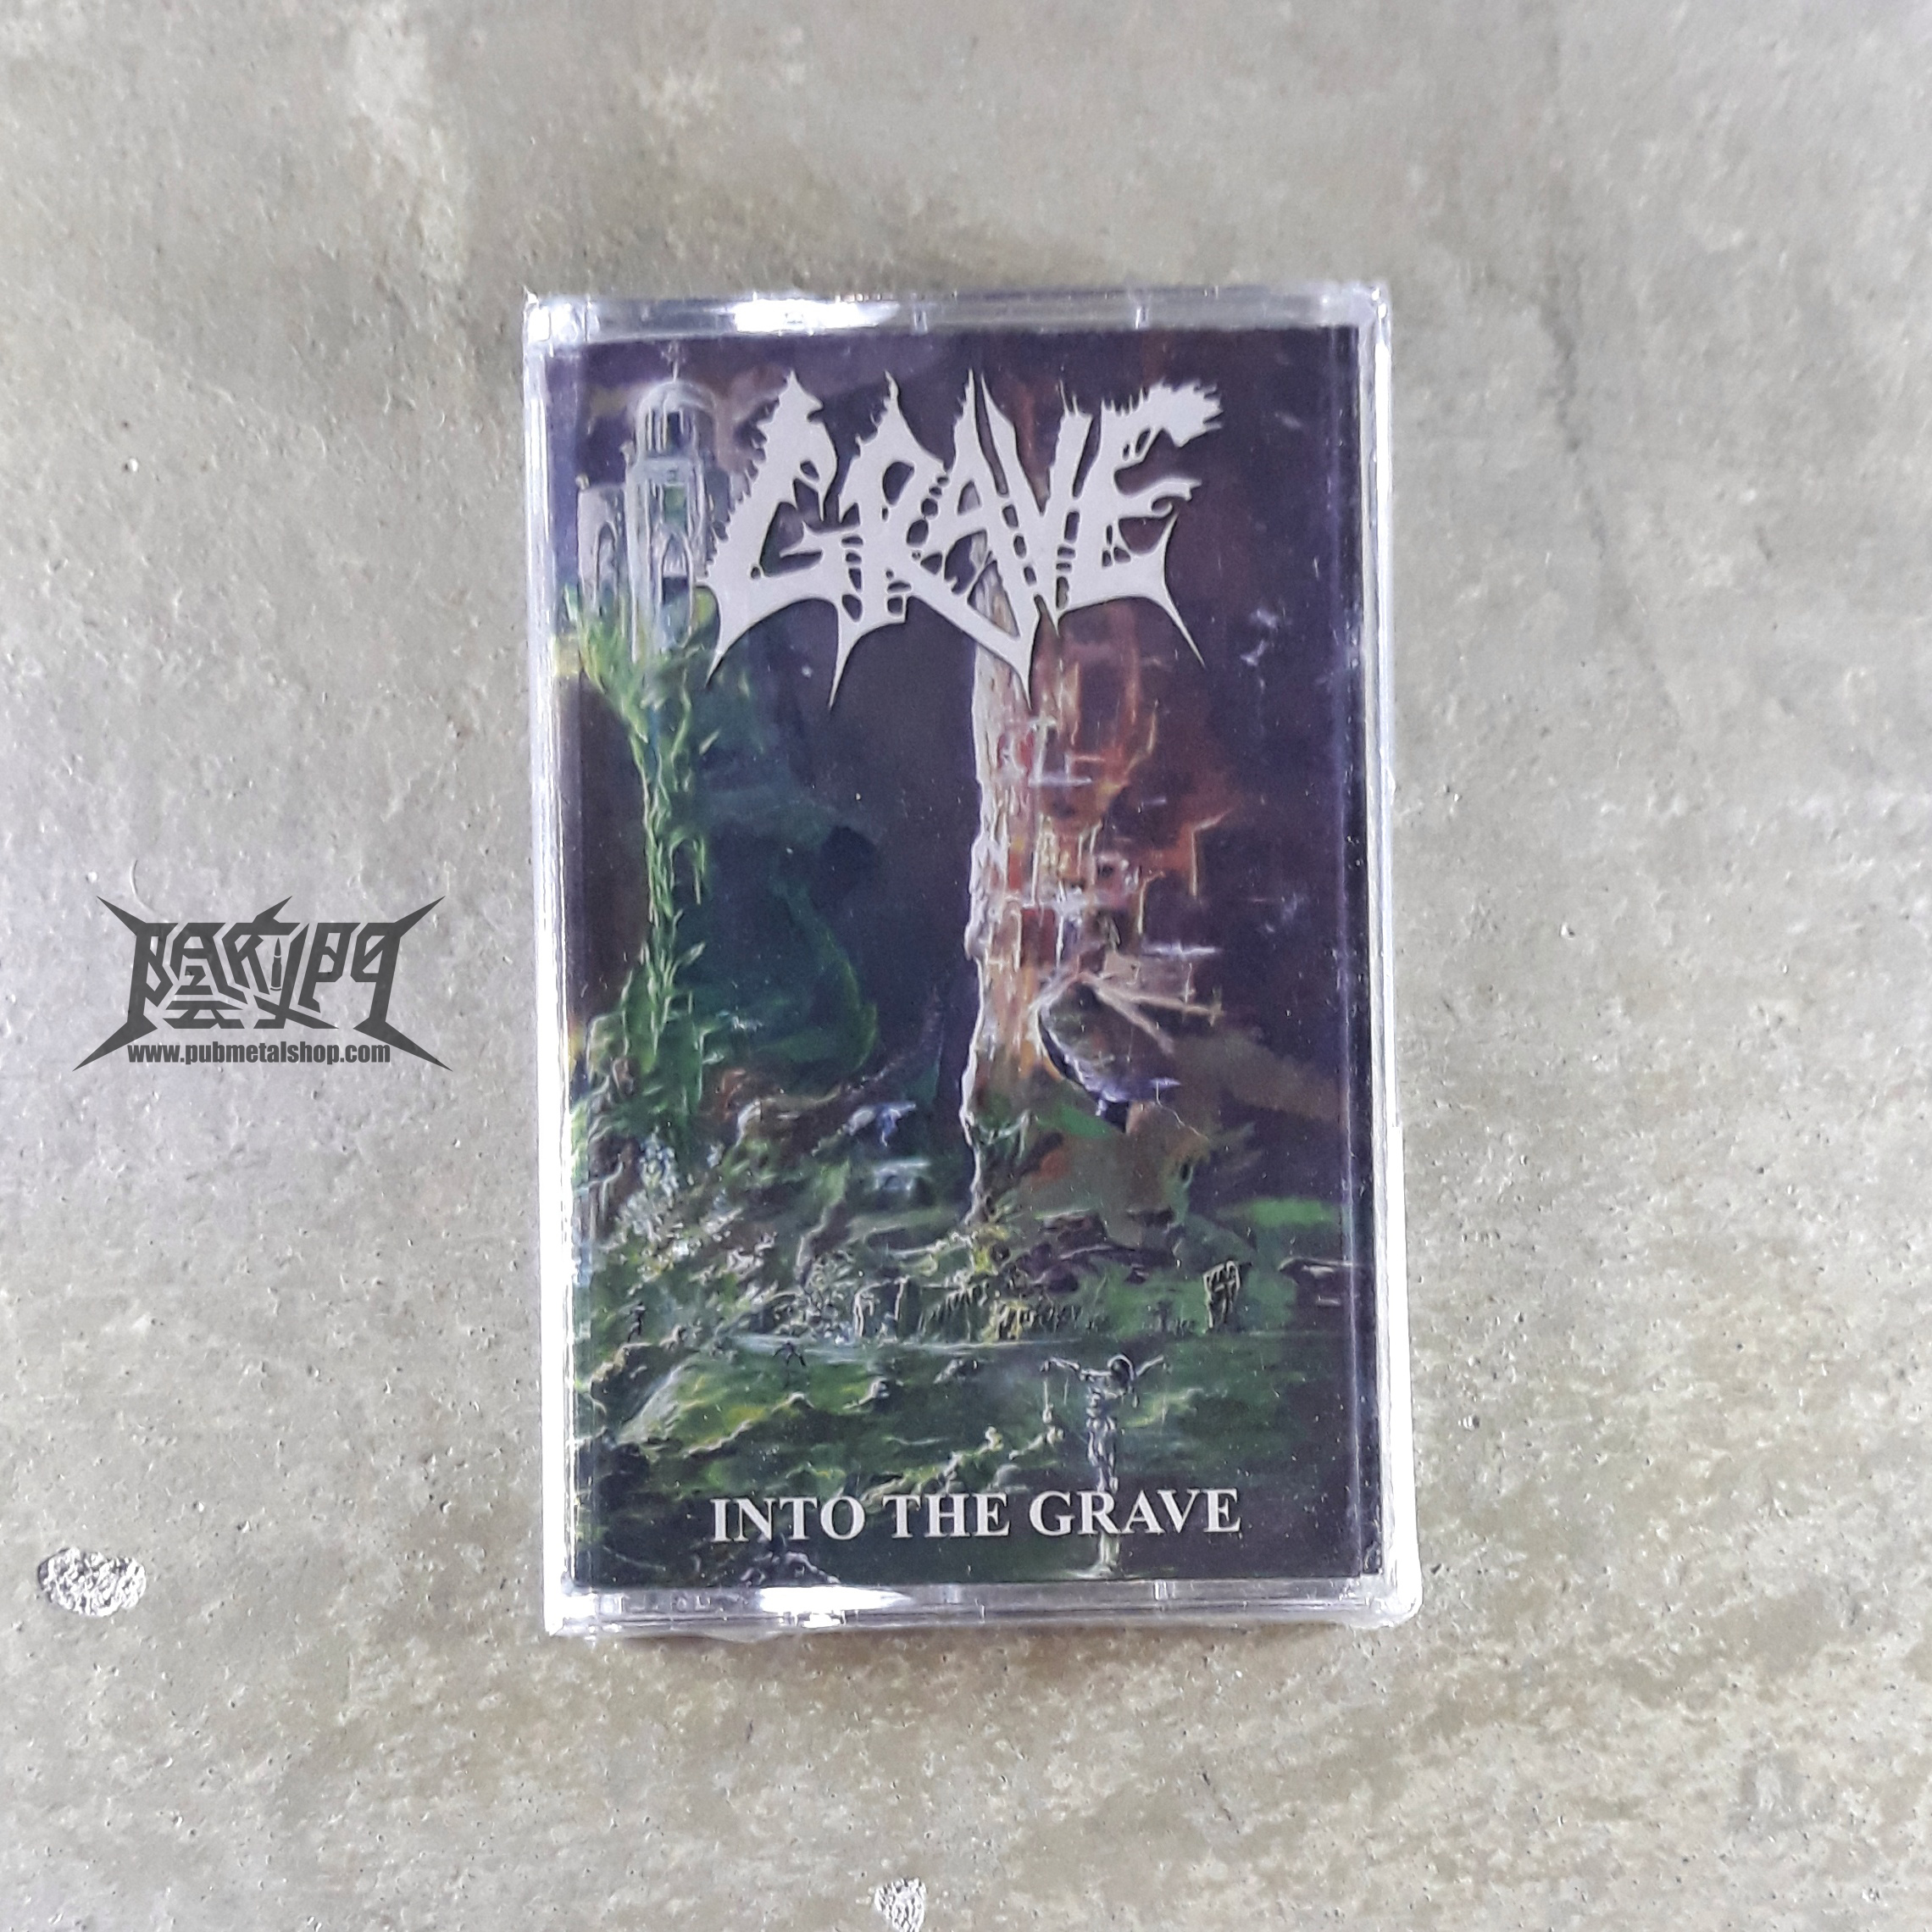 Grave-into the grave Tape.jpg